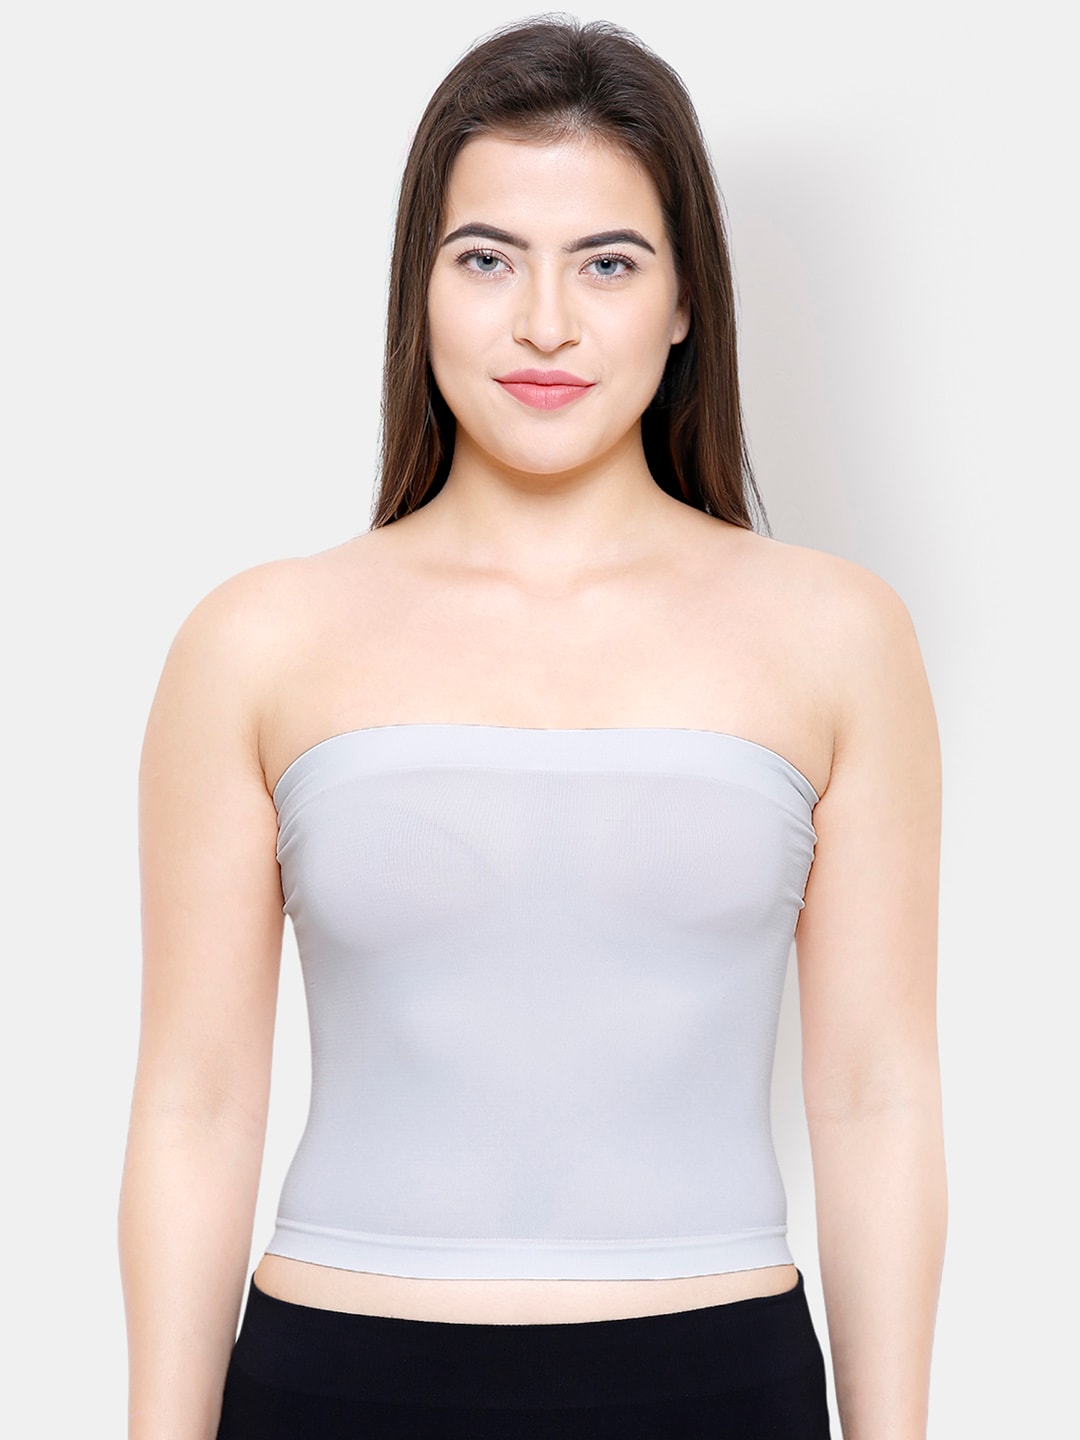 4a97307d37e Camisoles - Buy Camisole for Women   Girls Online at Best Price